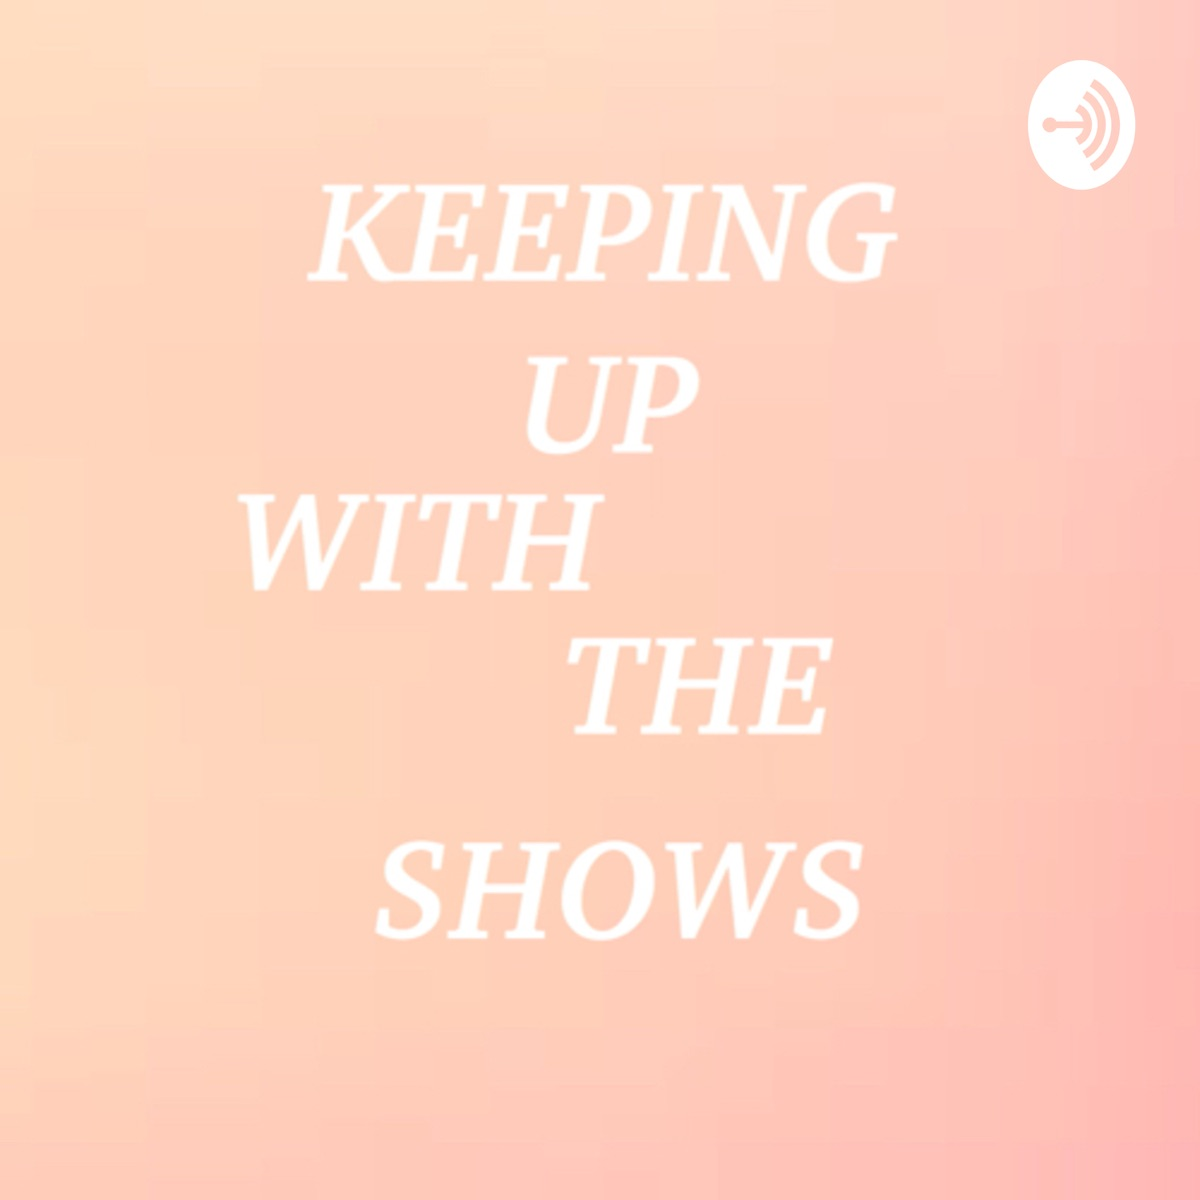 Keeping up With the Shows